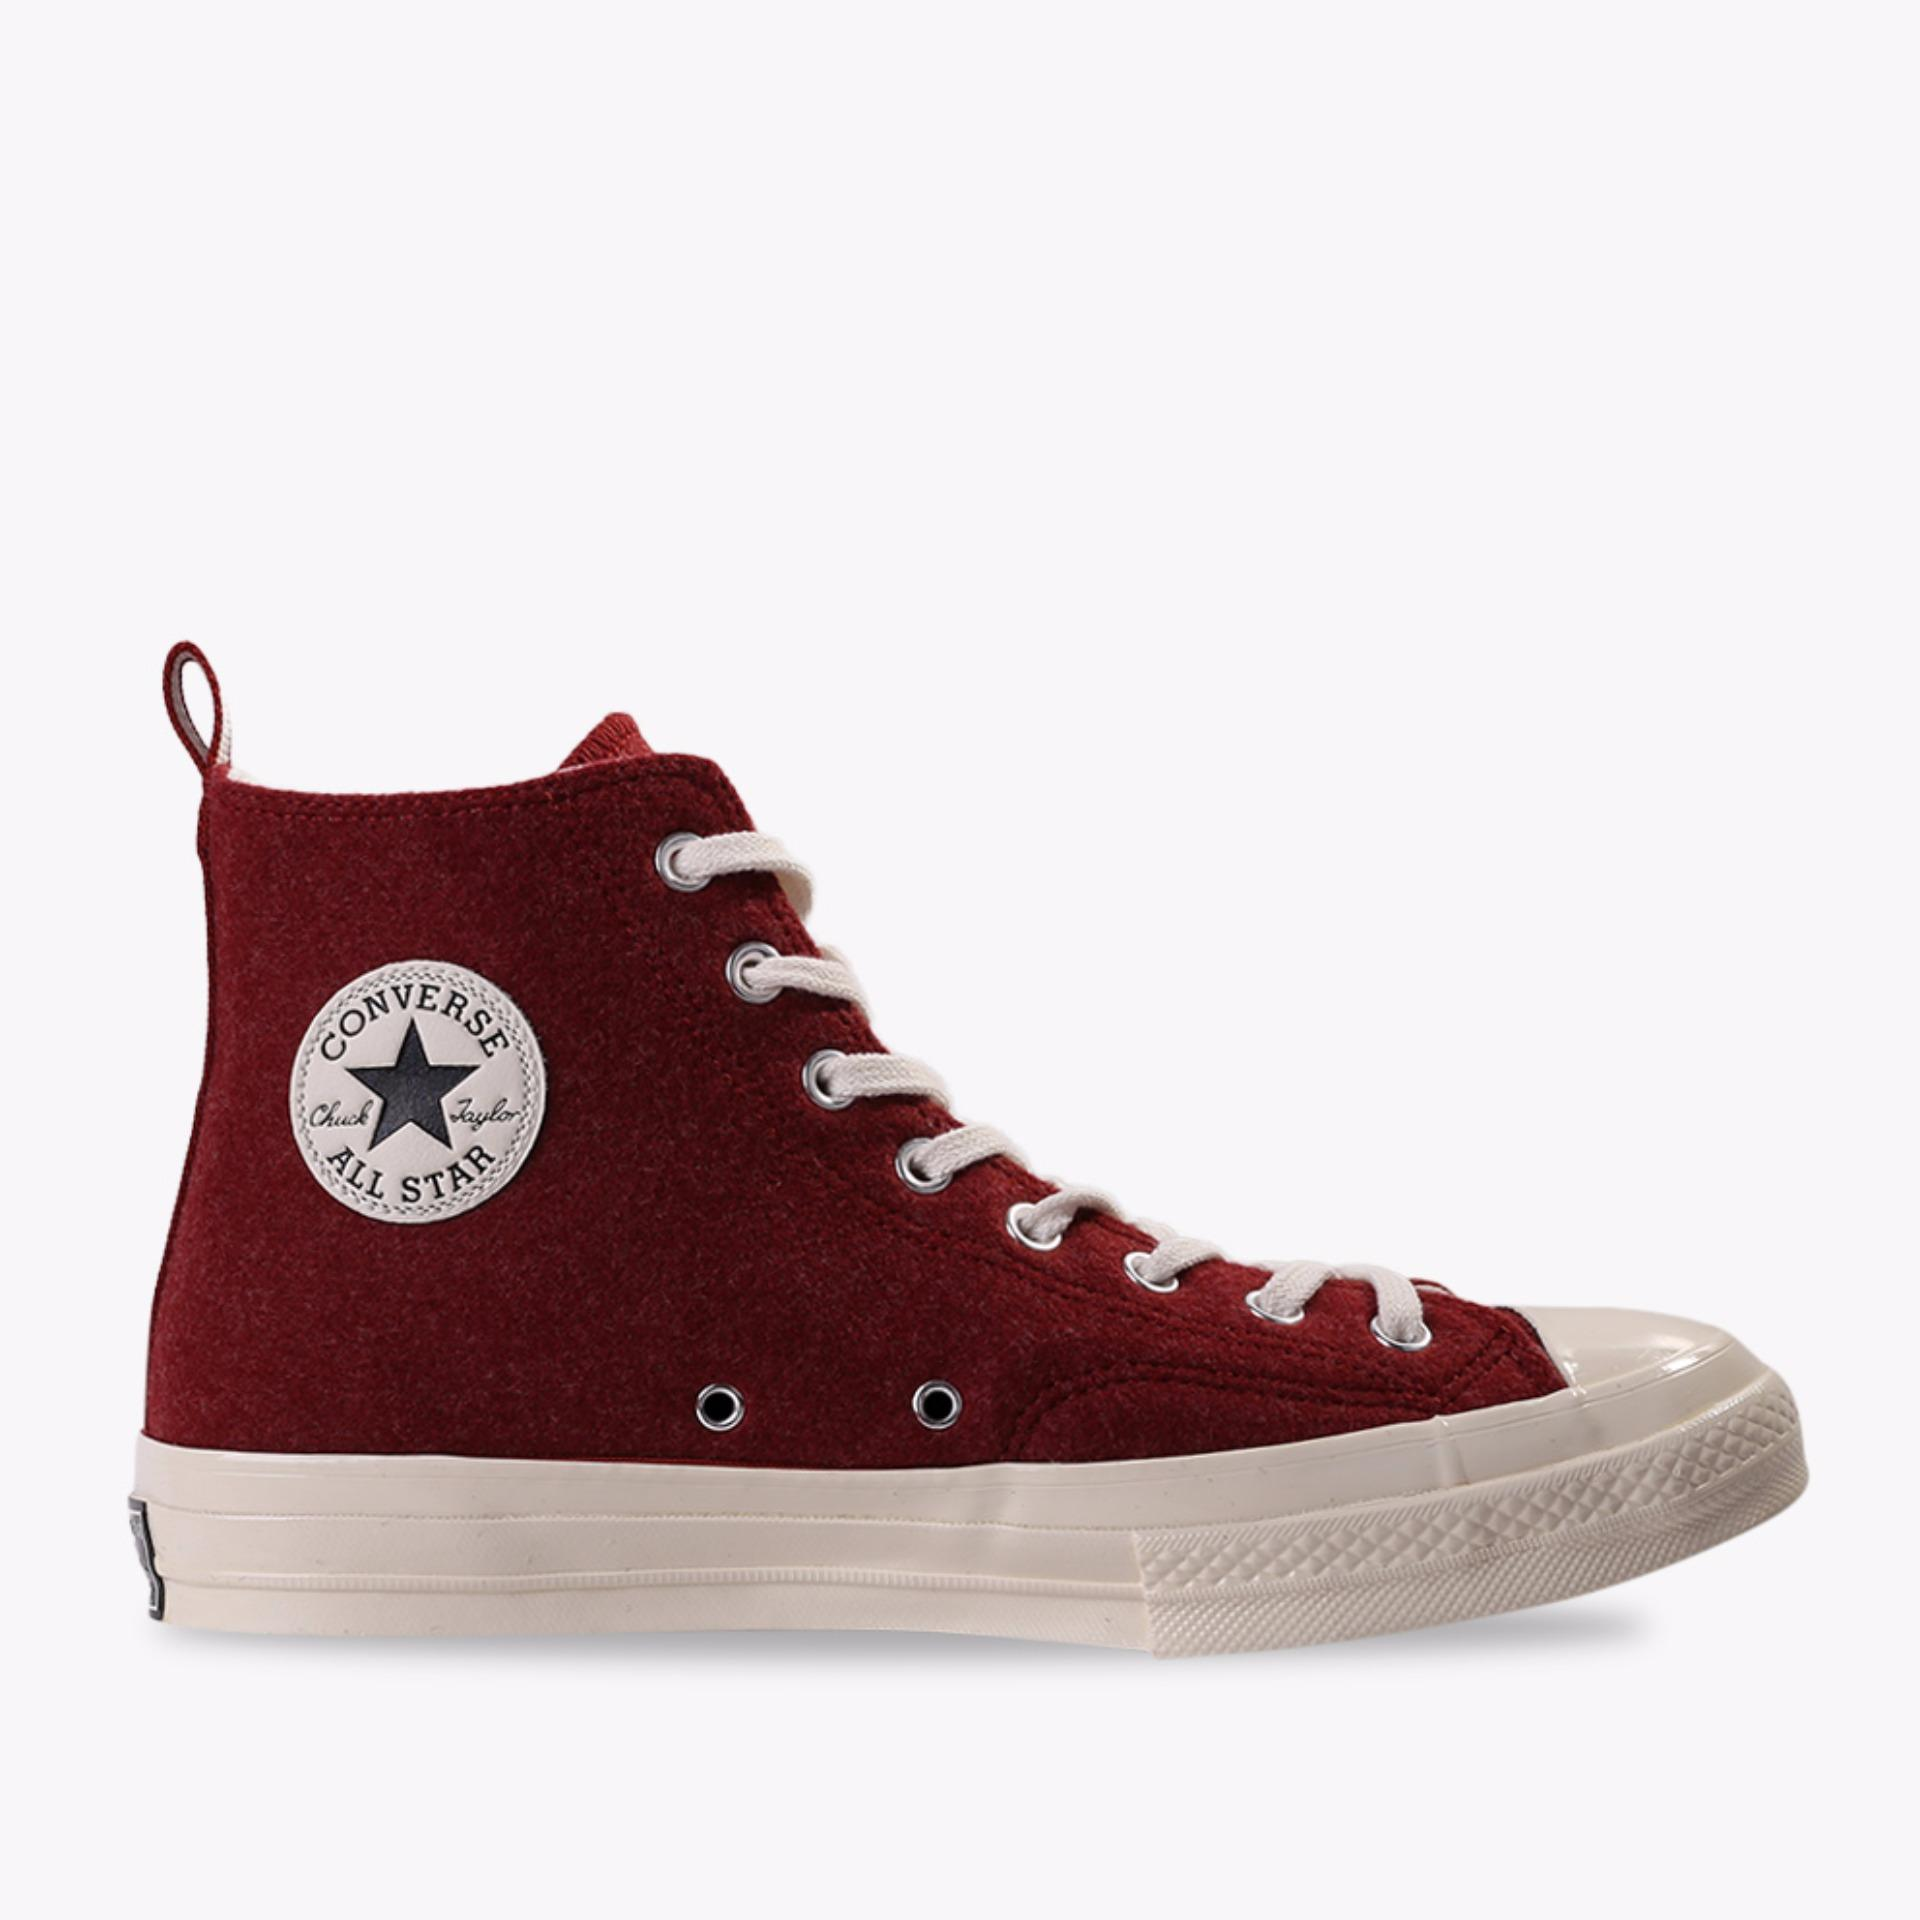 Converse Chuck 70 Felt Hi Men's Sneakers Shoes - Merah